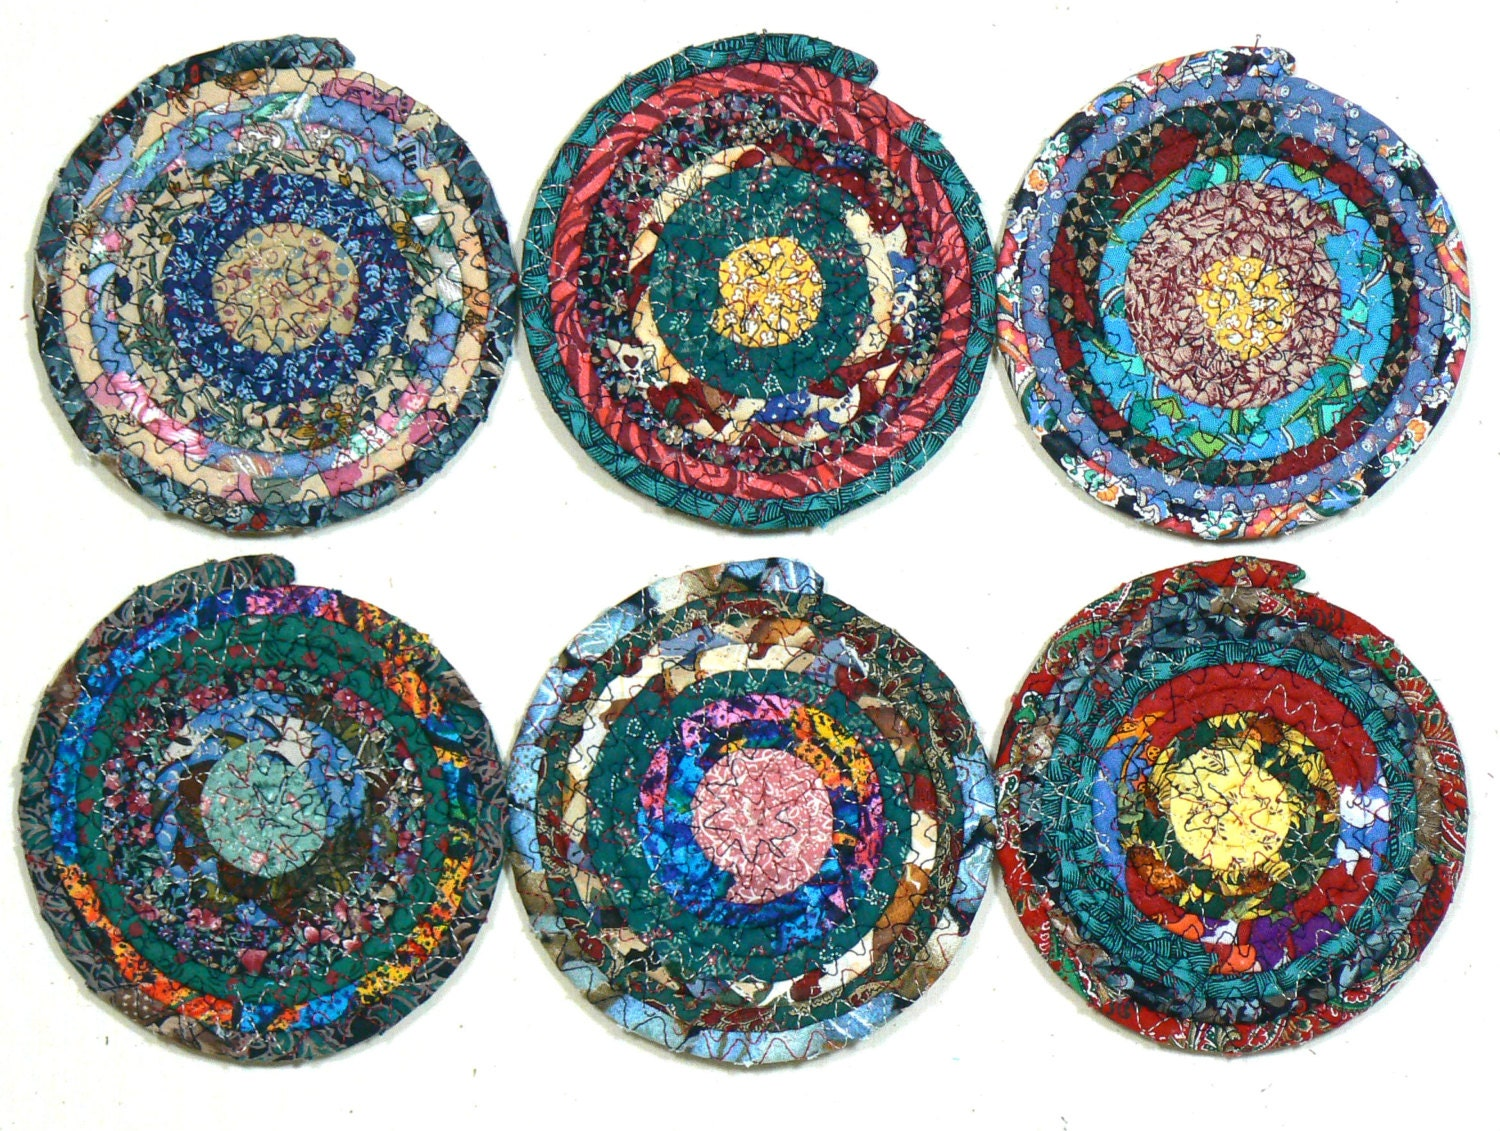 Six Fabric Coasters Coiled Rope Coasters Fabric Mug Rugs